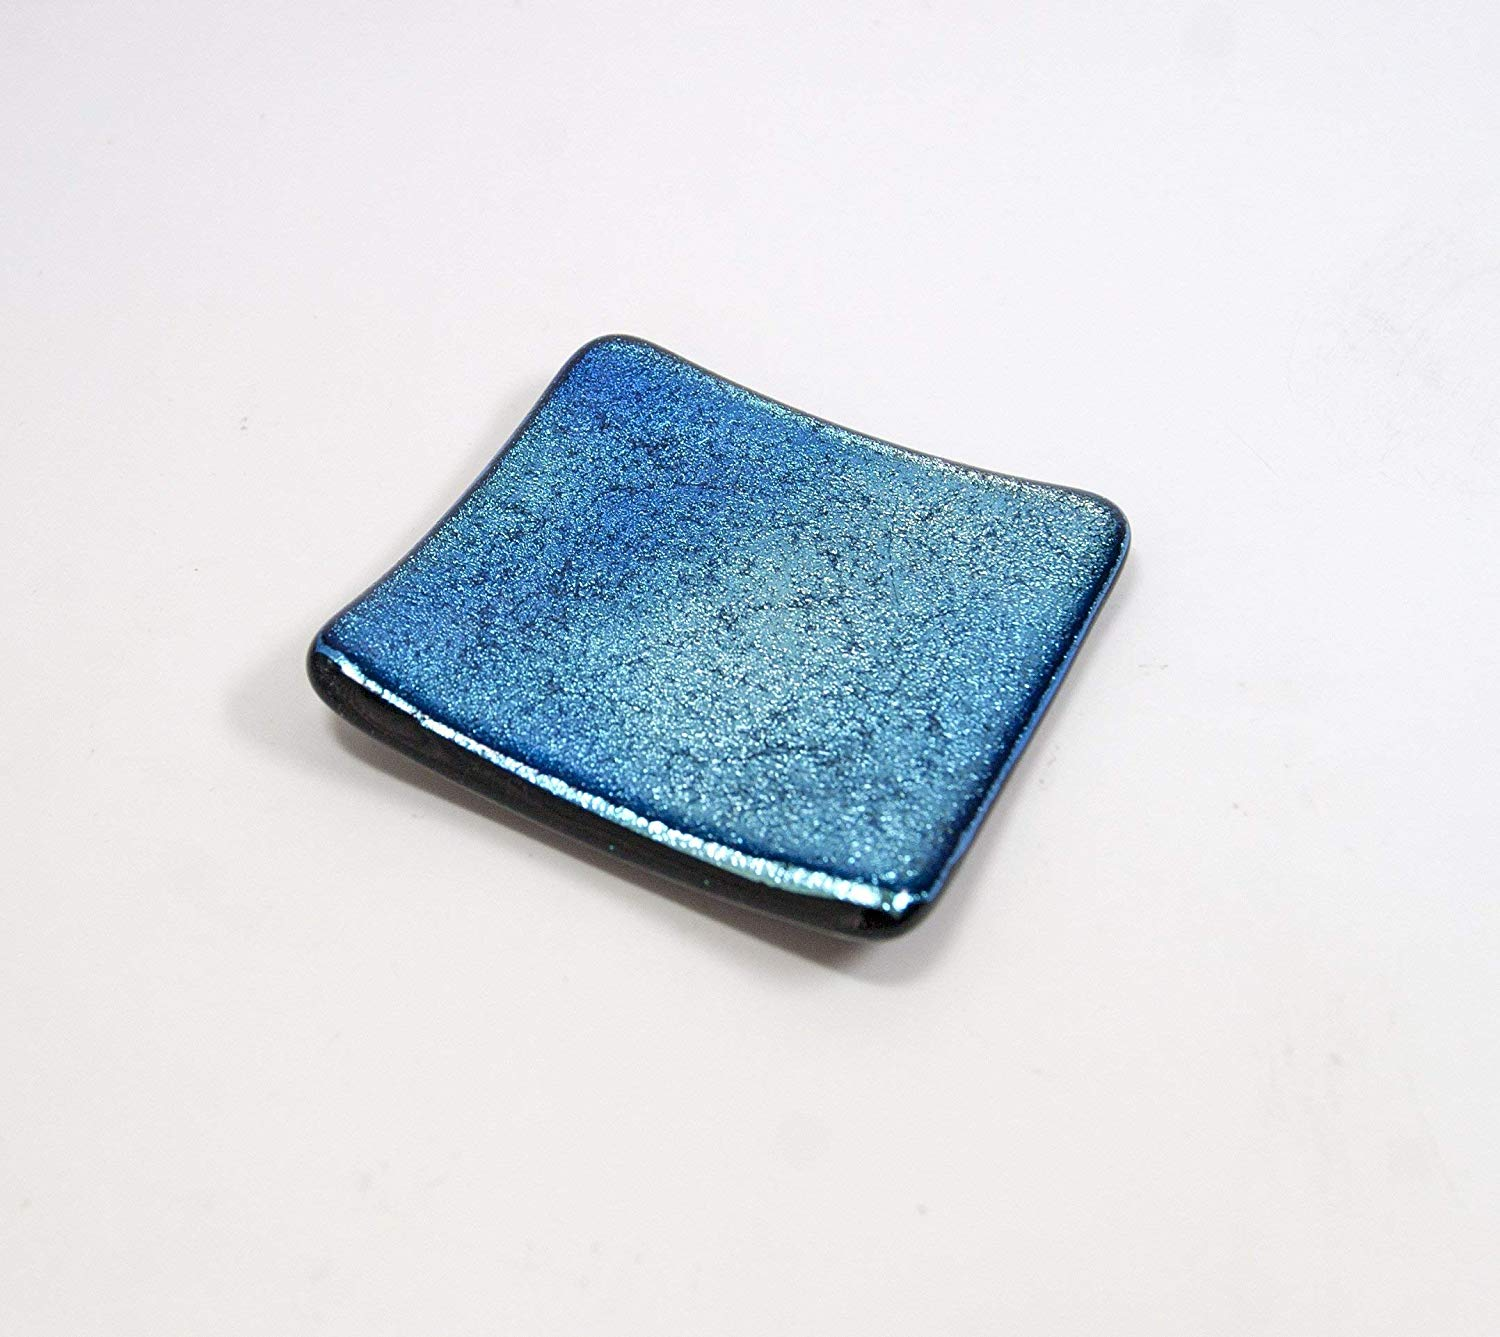 Small Square Glass Plate Candle Holder Blues and Turquoise in Modern Design